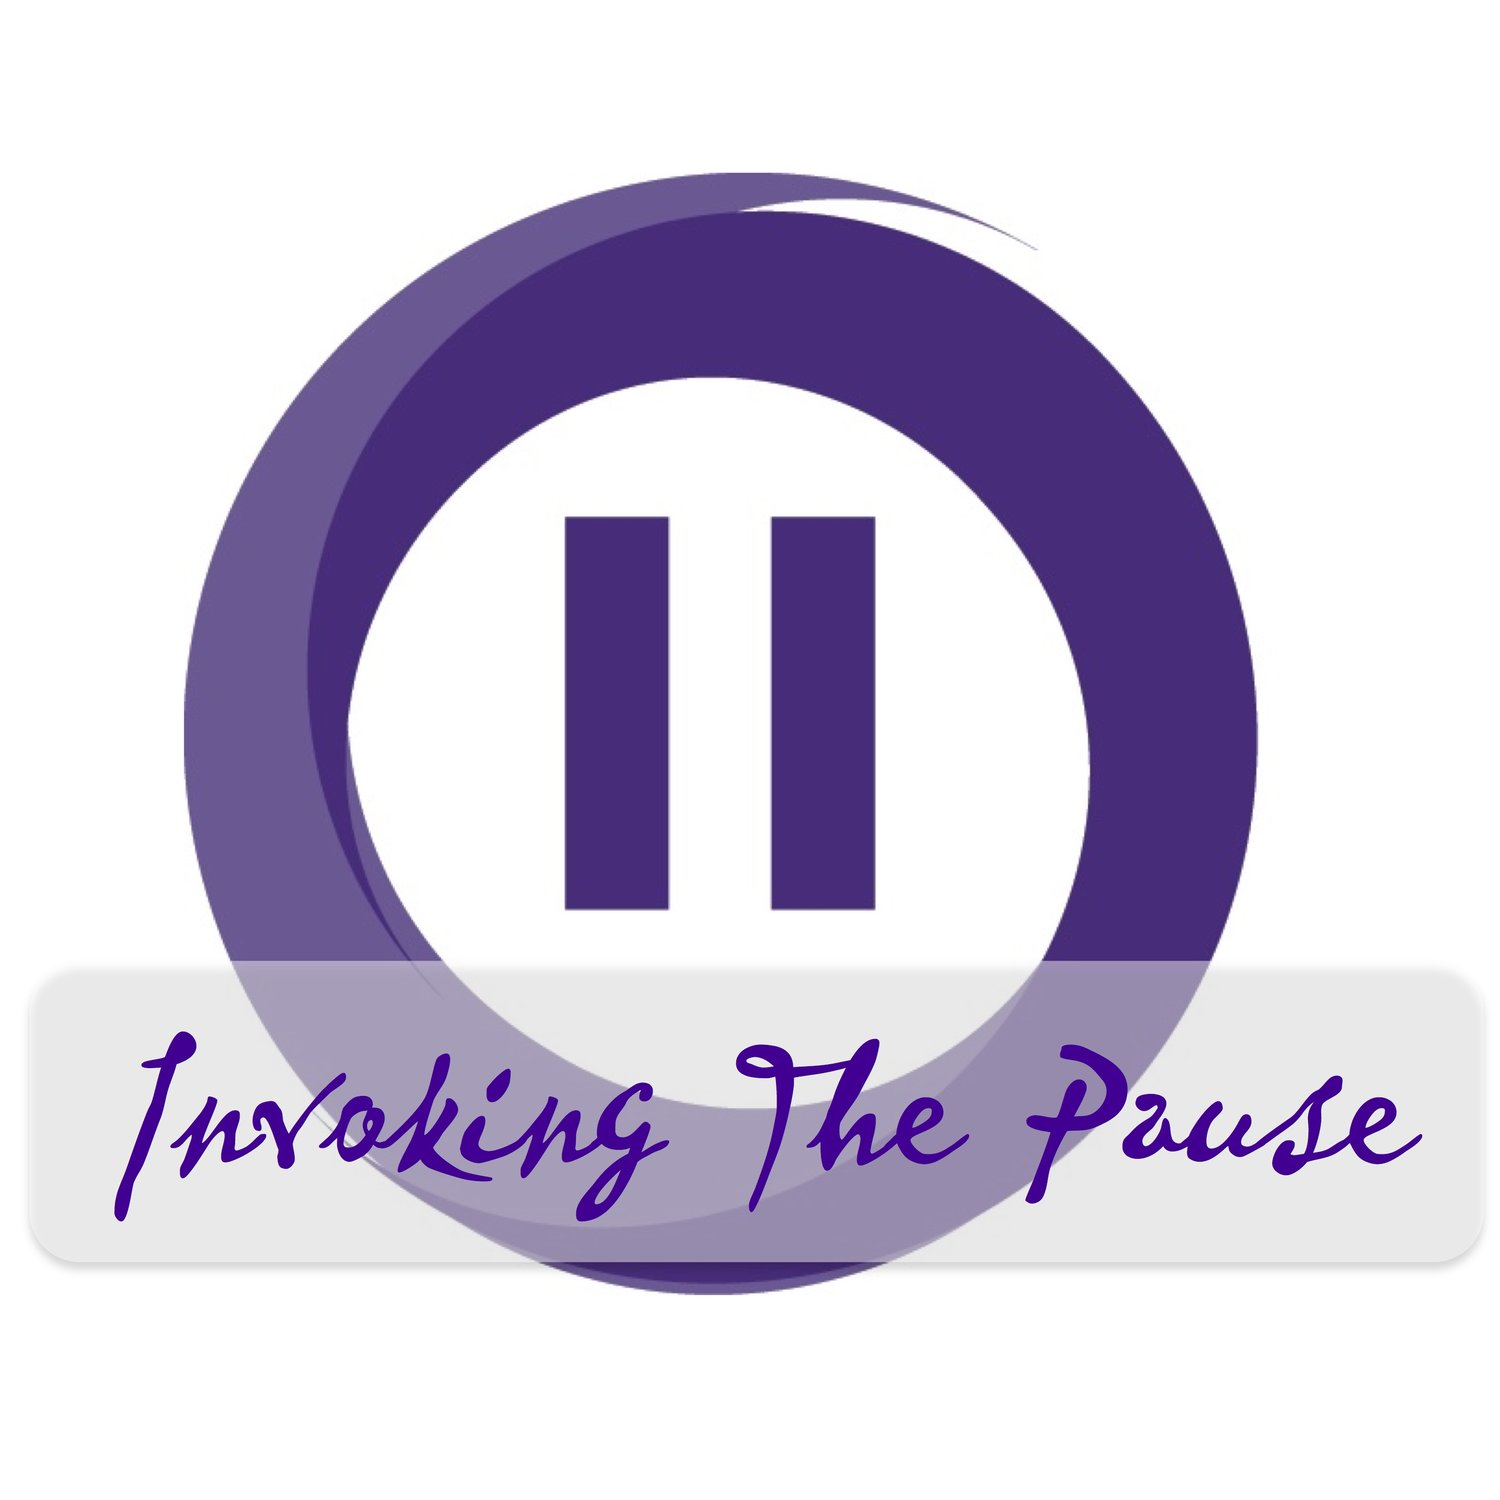 Invoking The Pause Grant Partners